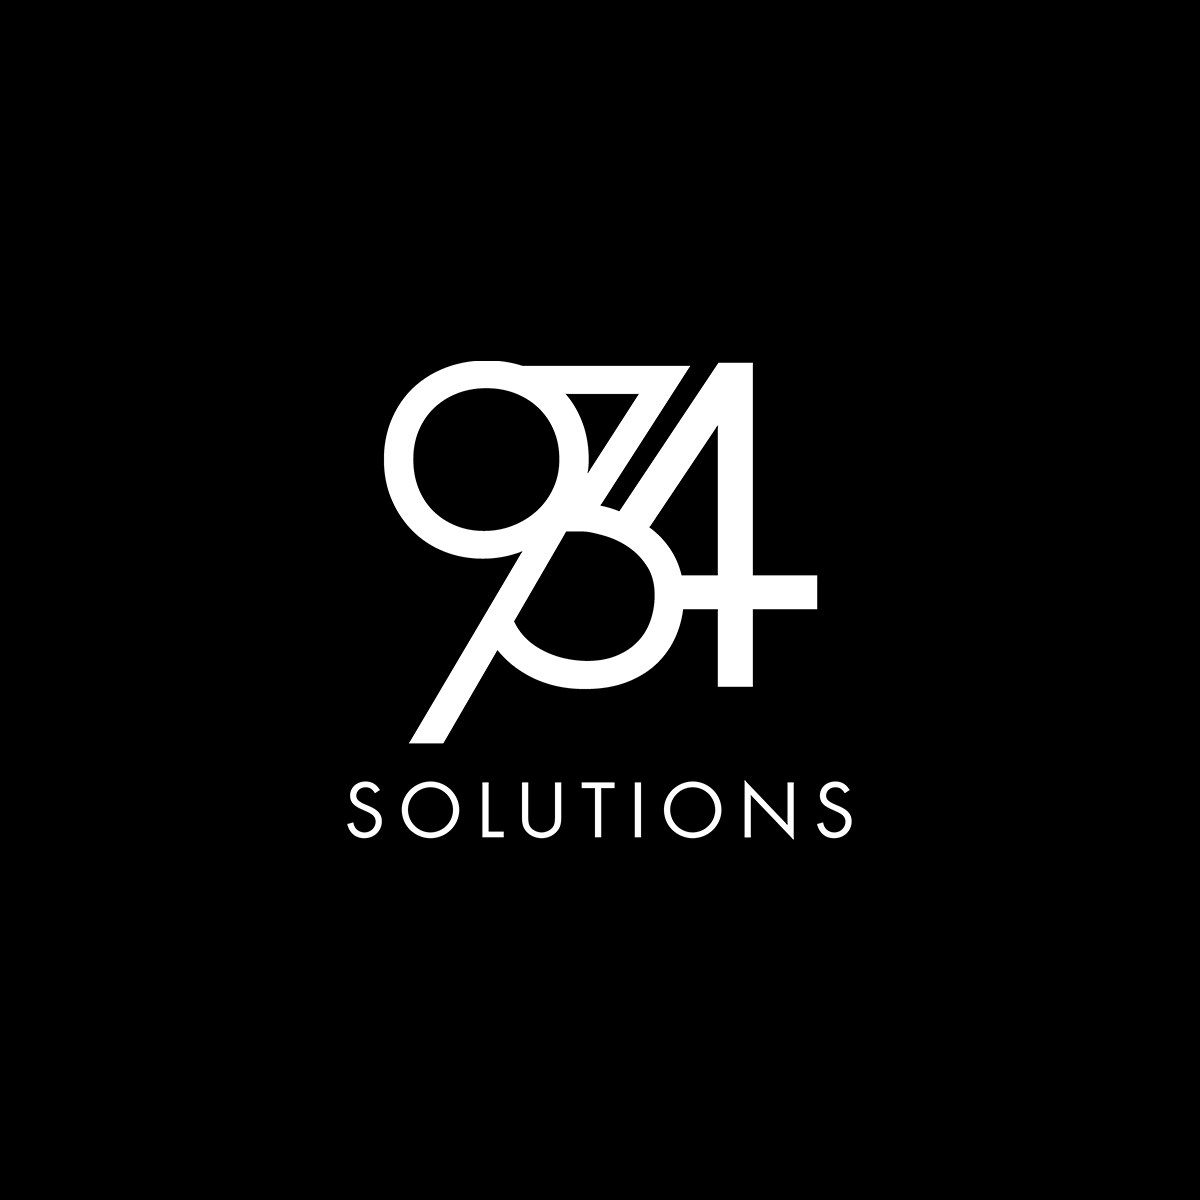 934 Solutions (Long)